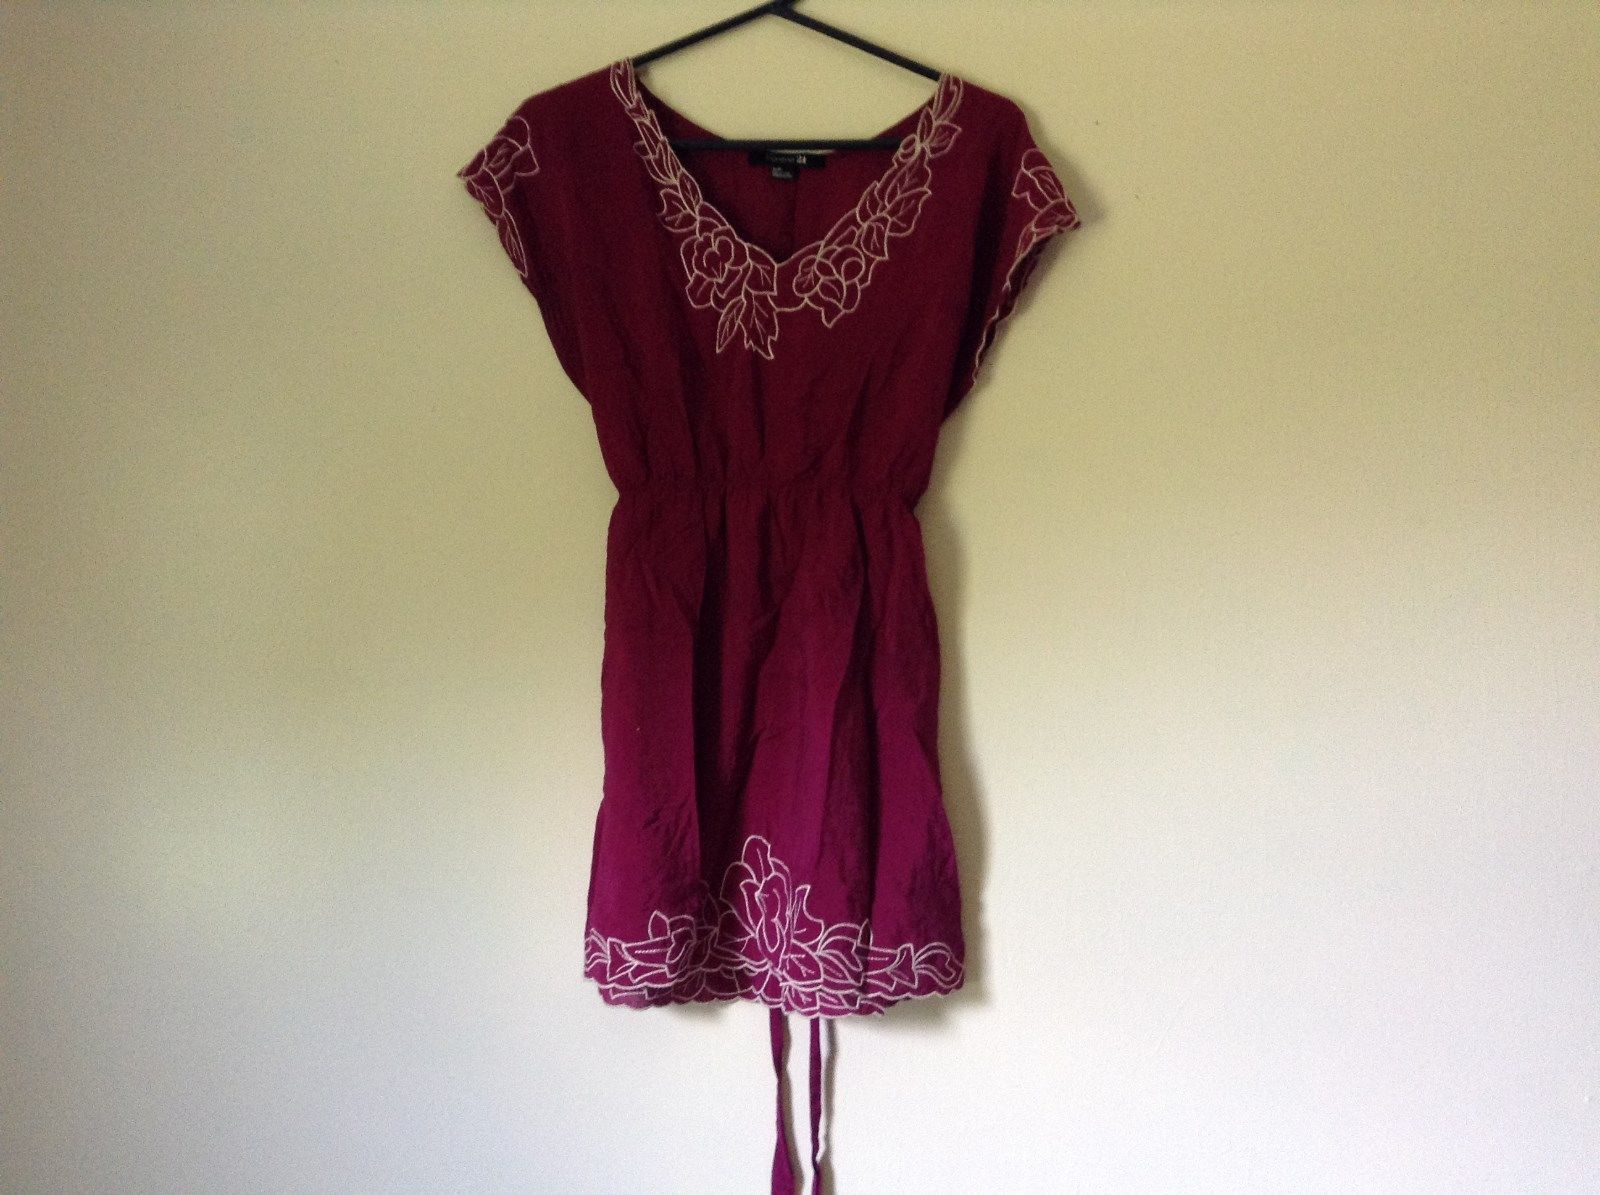 Forever 21 Dark Raspberry Color Dress with White Accent Size Small Loose Fit